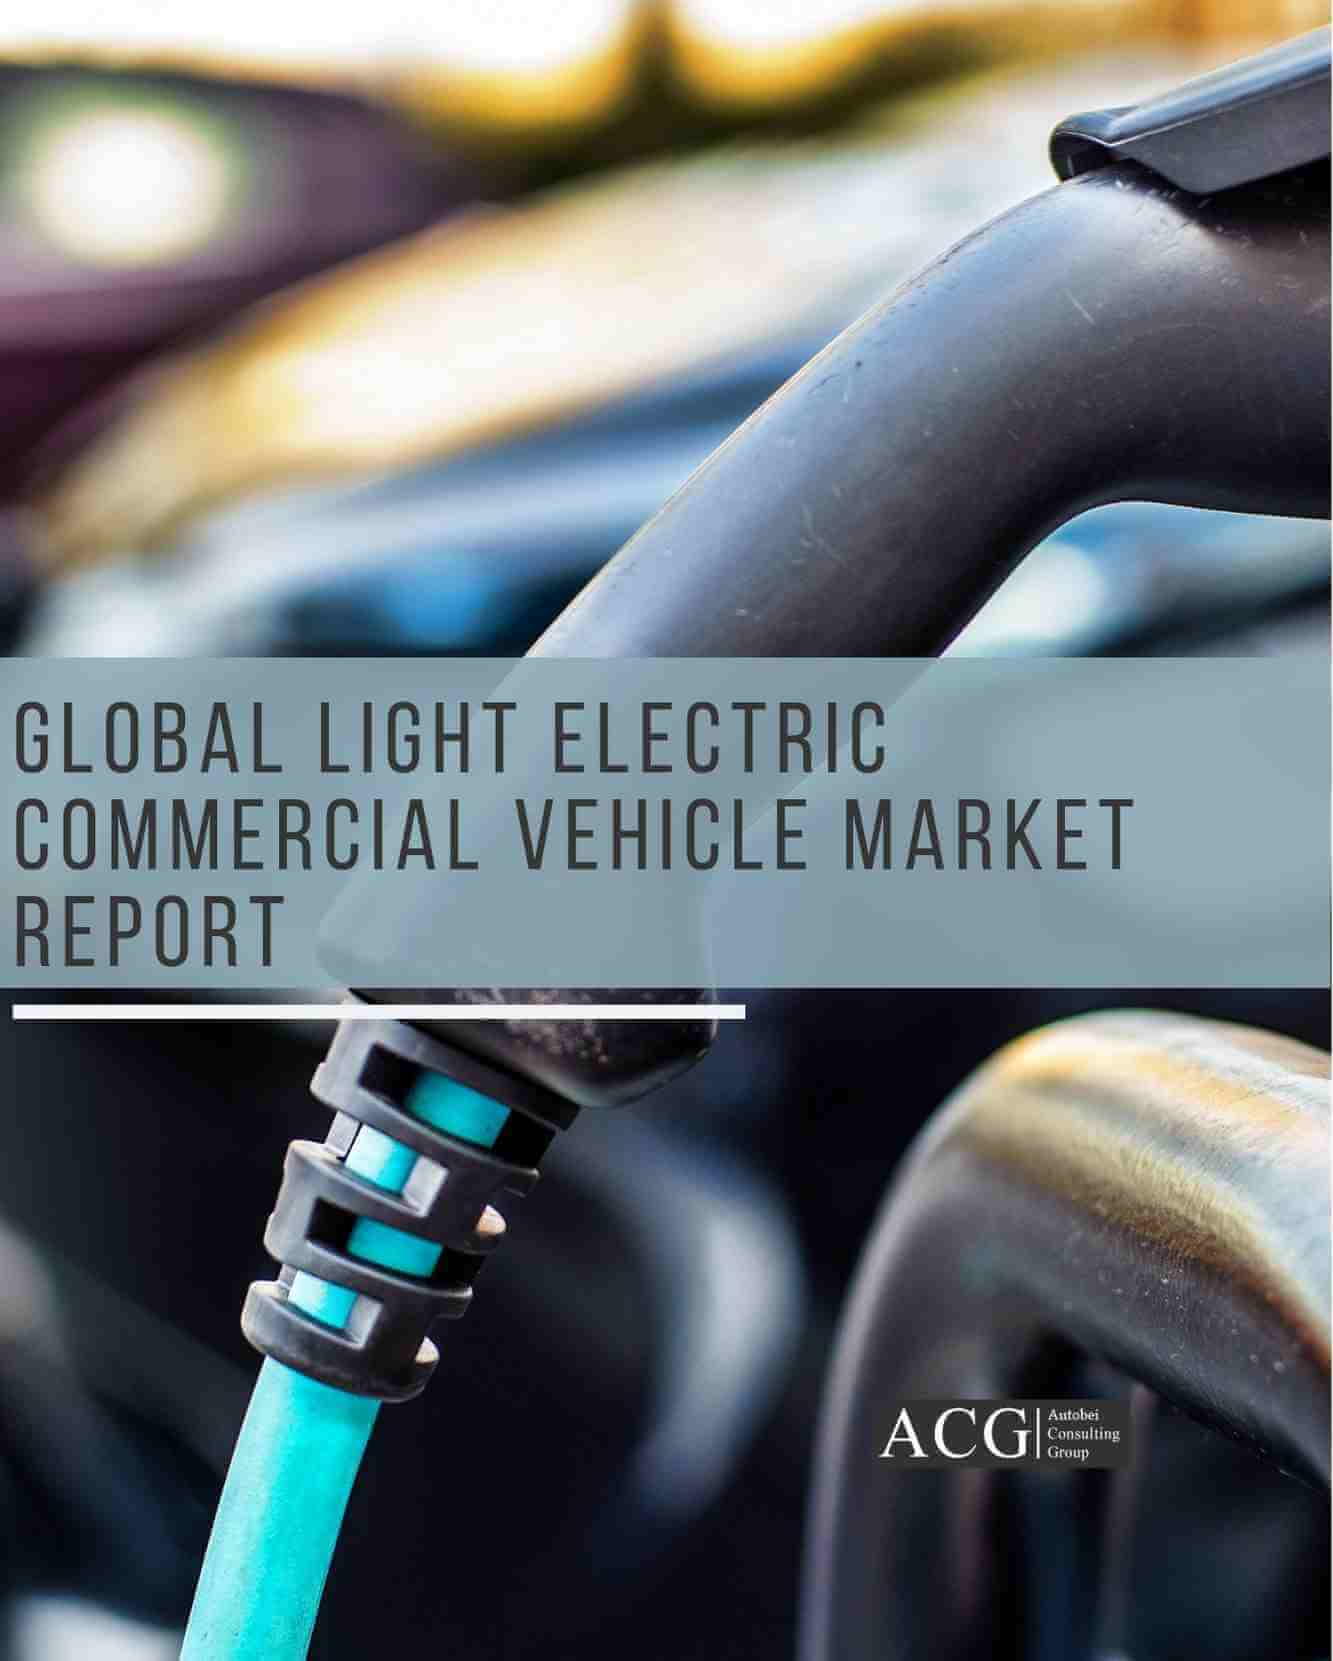 Global Light Electric Commercial Vehicle Market Report